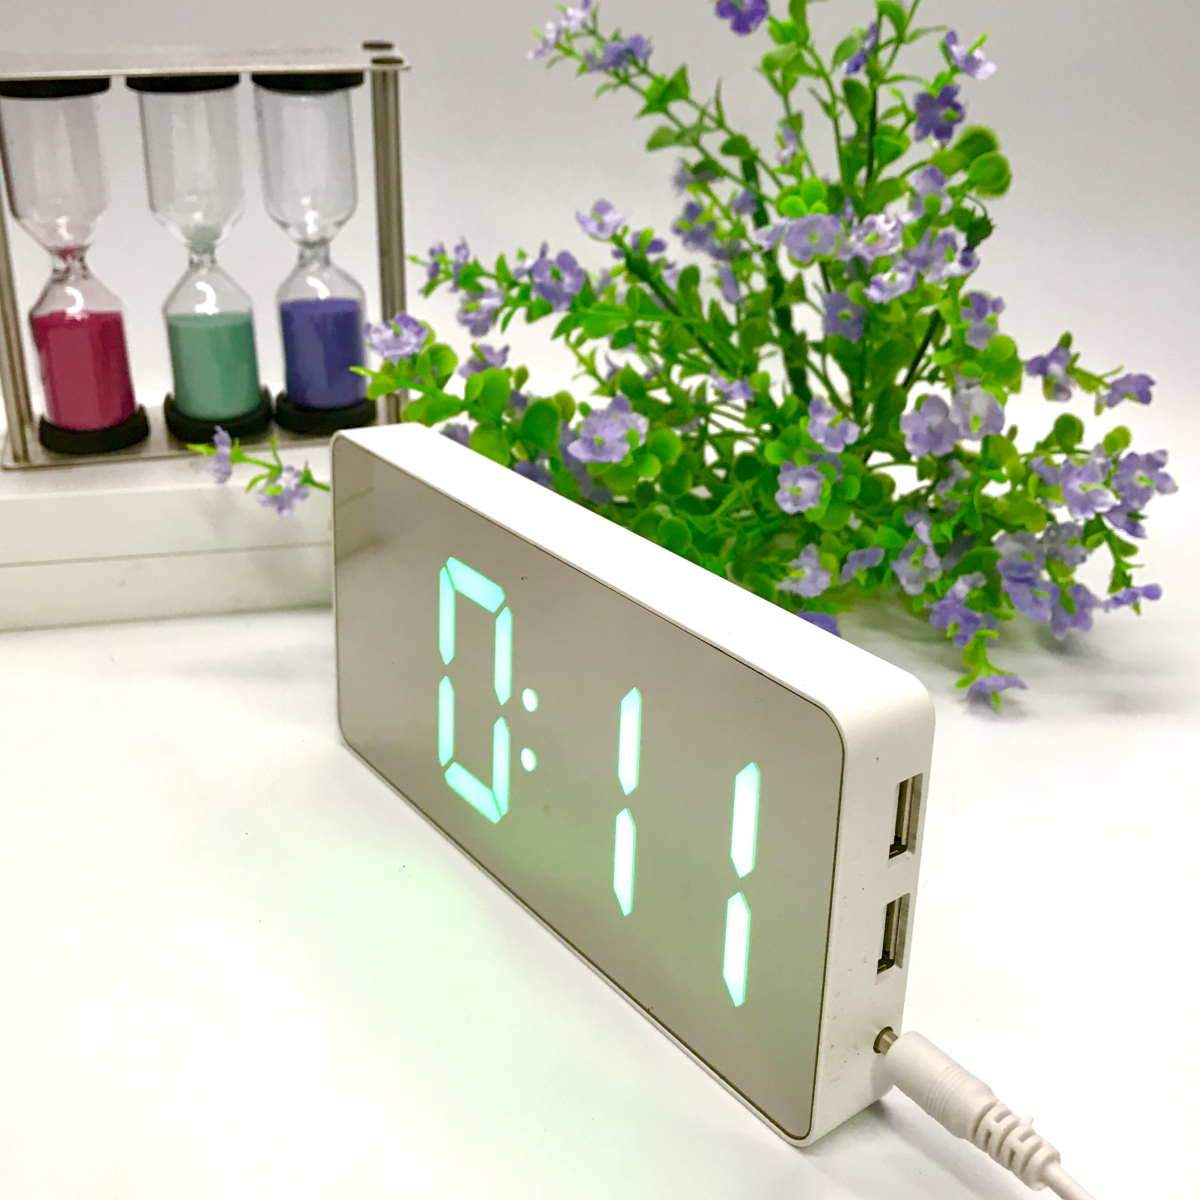 Checkmate Hector Mirror Face LED USB Charging Alarm Clock Green 16cm VGW-3322-GRE 2